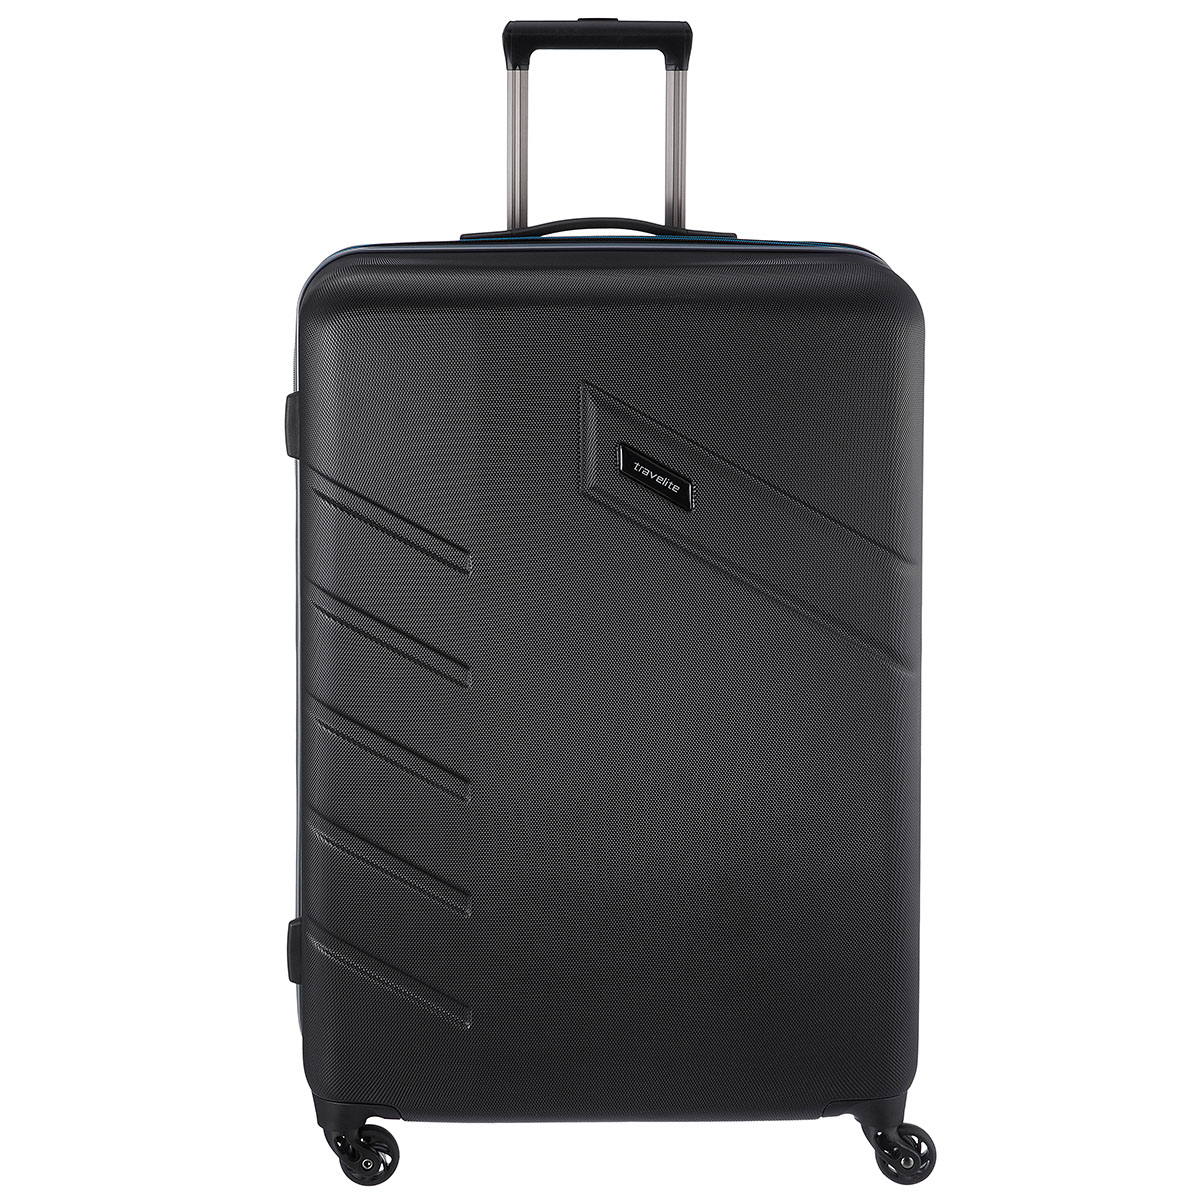 Travelite Tourer 4 Rollen ABS Hartschalen Trolley 4 Rad Koffer 76 cm